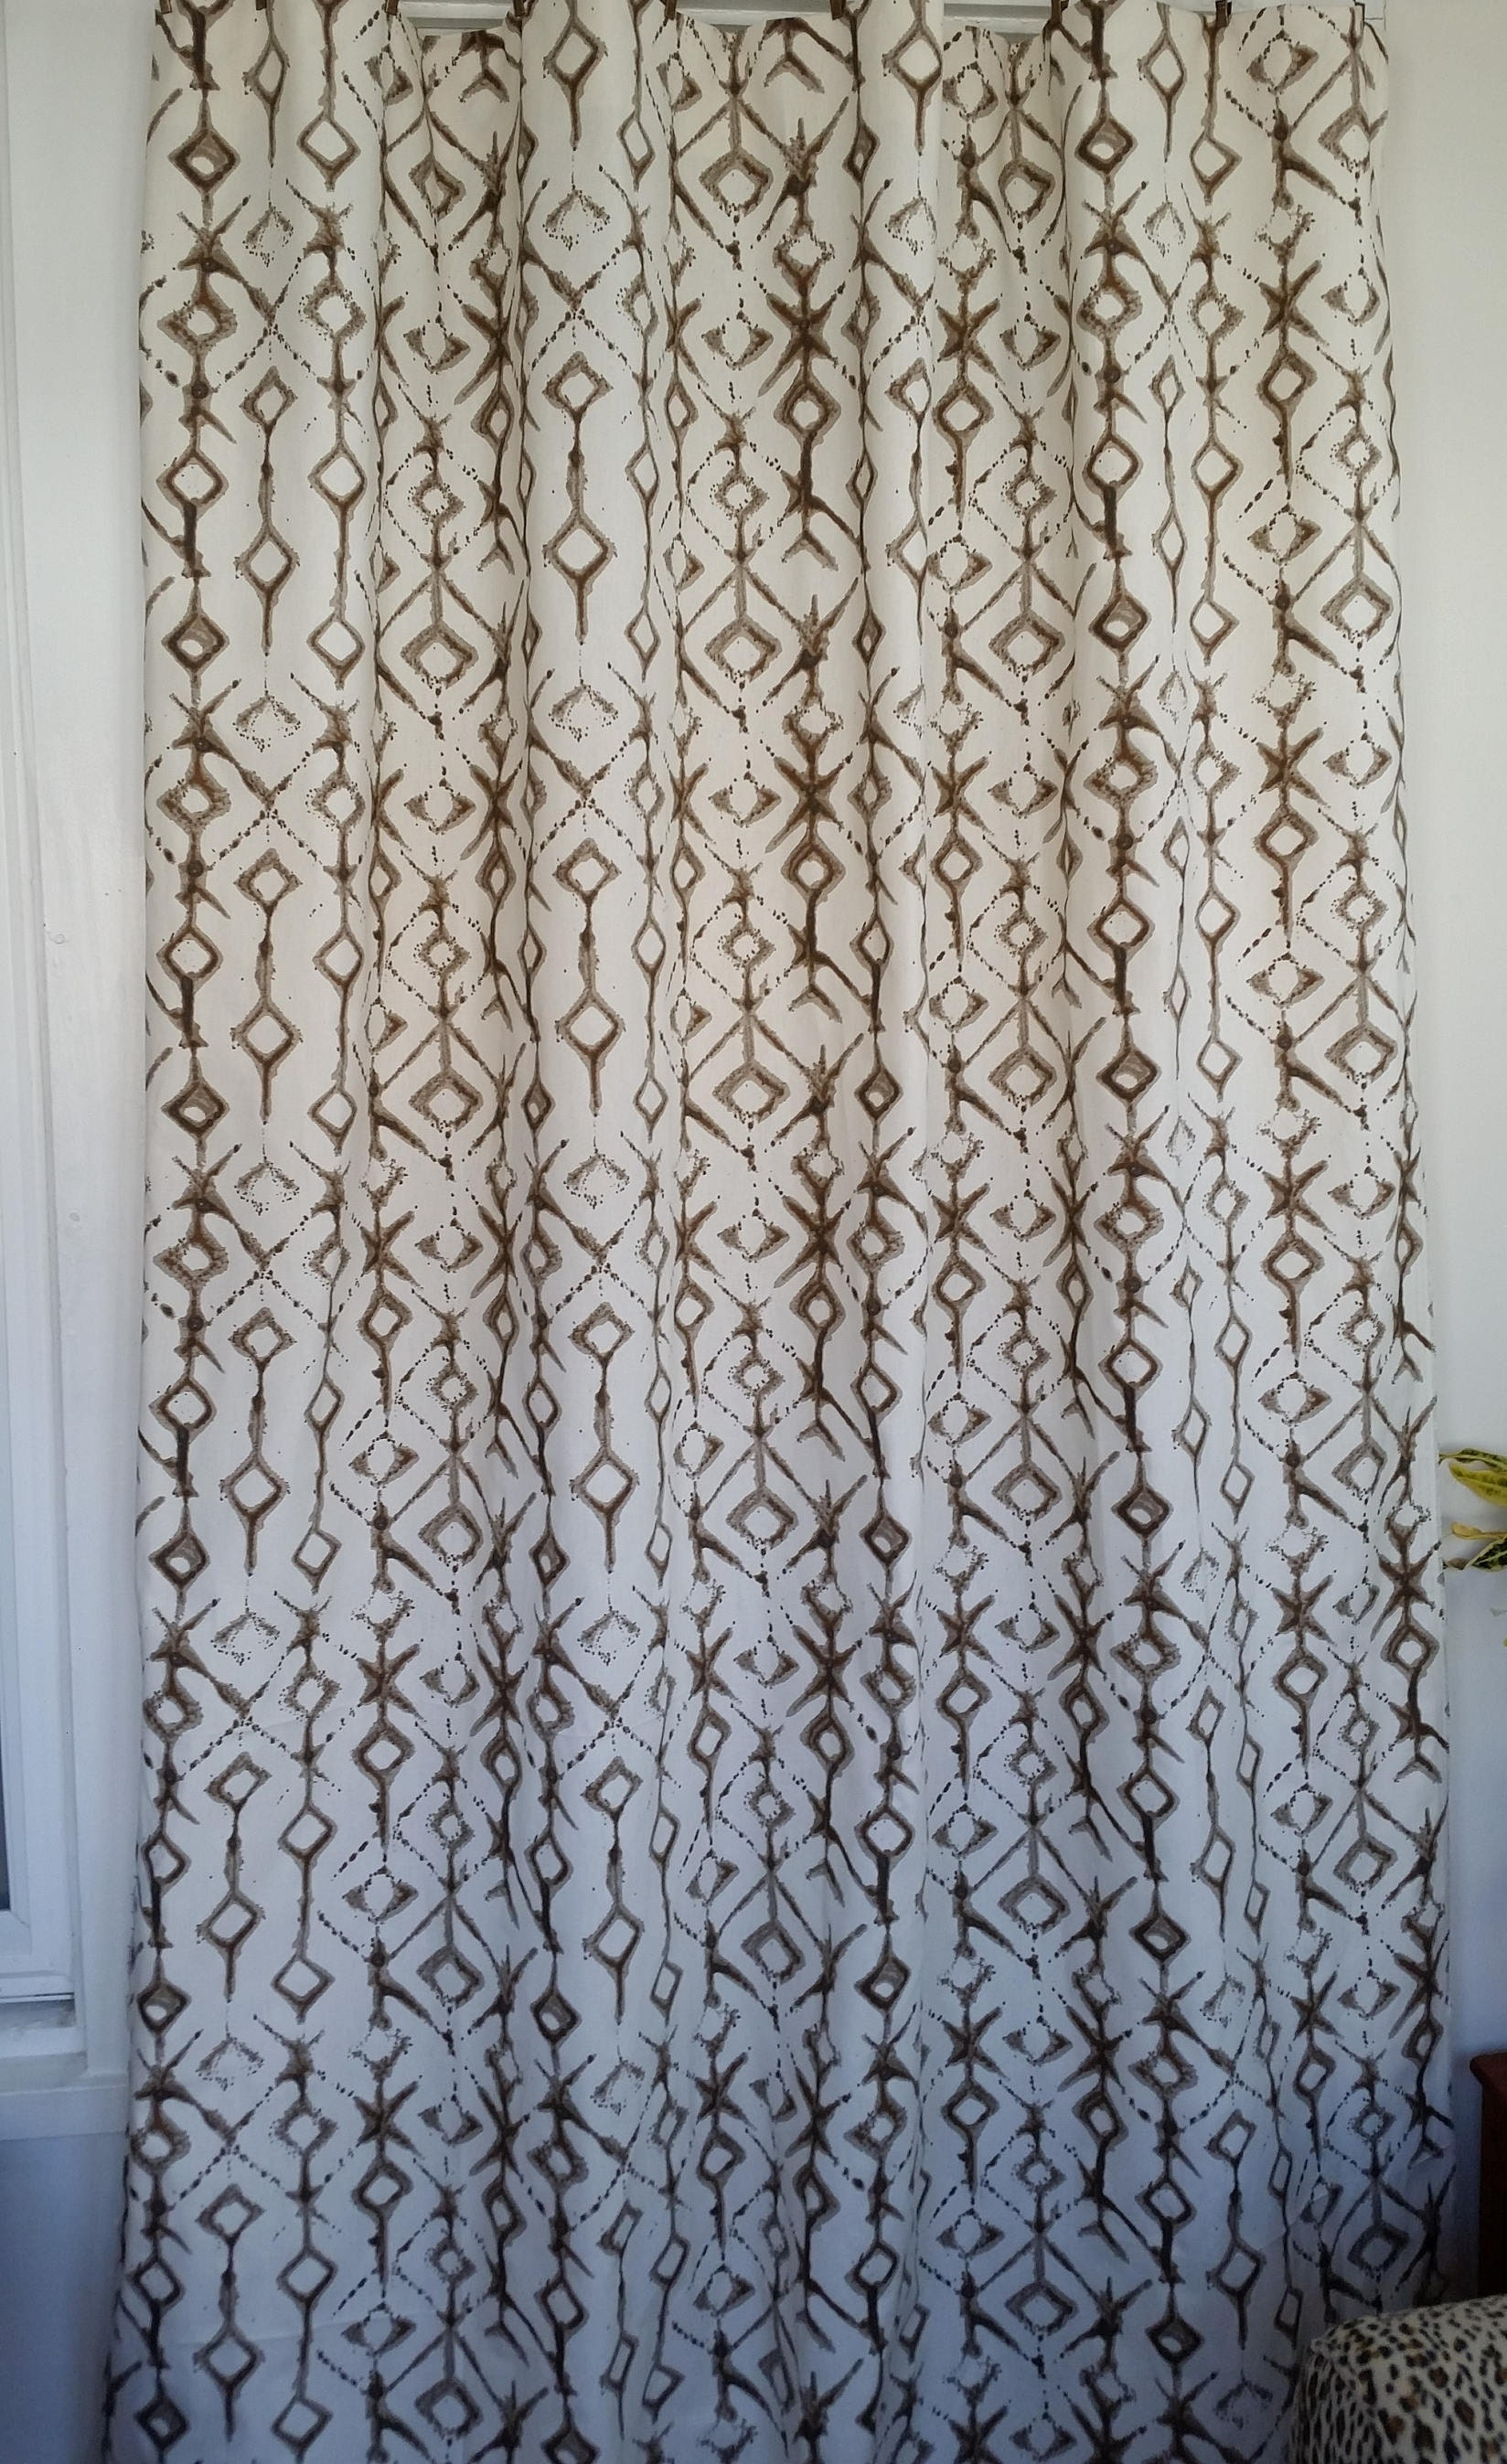 Fabric Shower Curtain Tribal Print Ecru And White Cotton 72 84 90 96 108 Custom Sizes Available